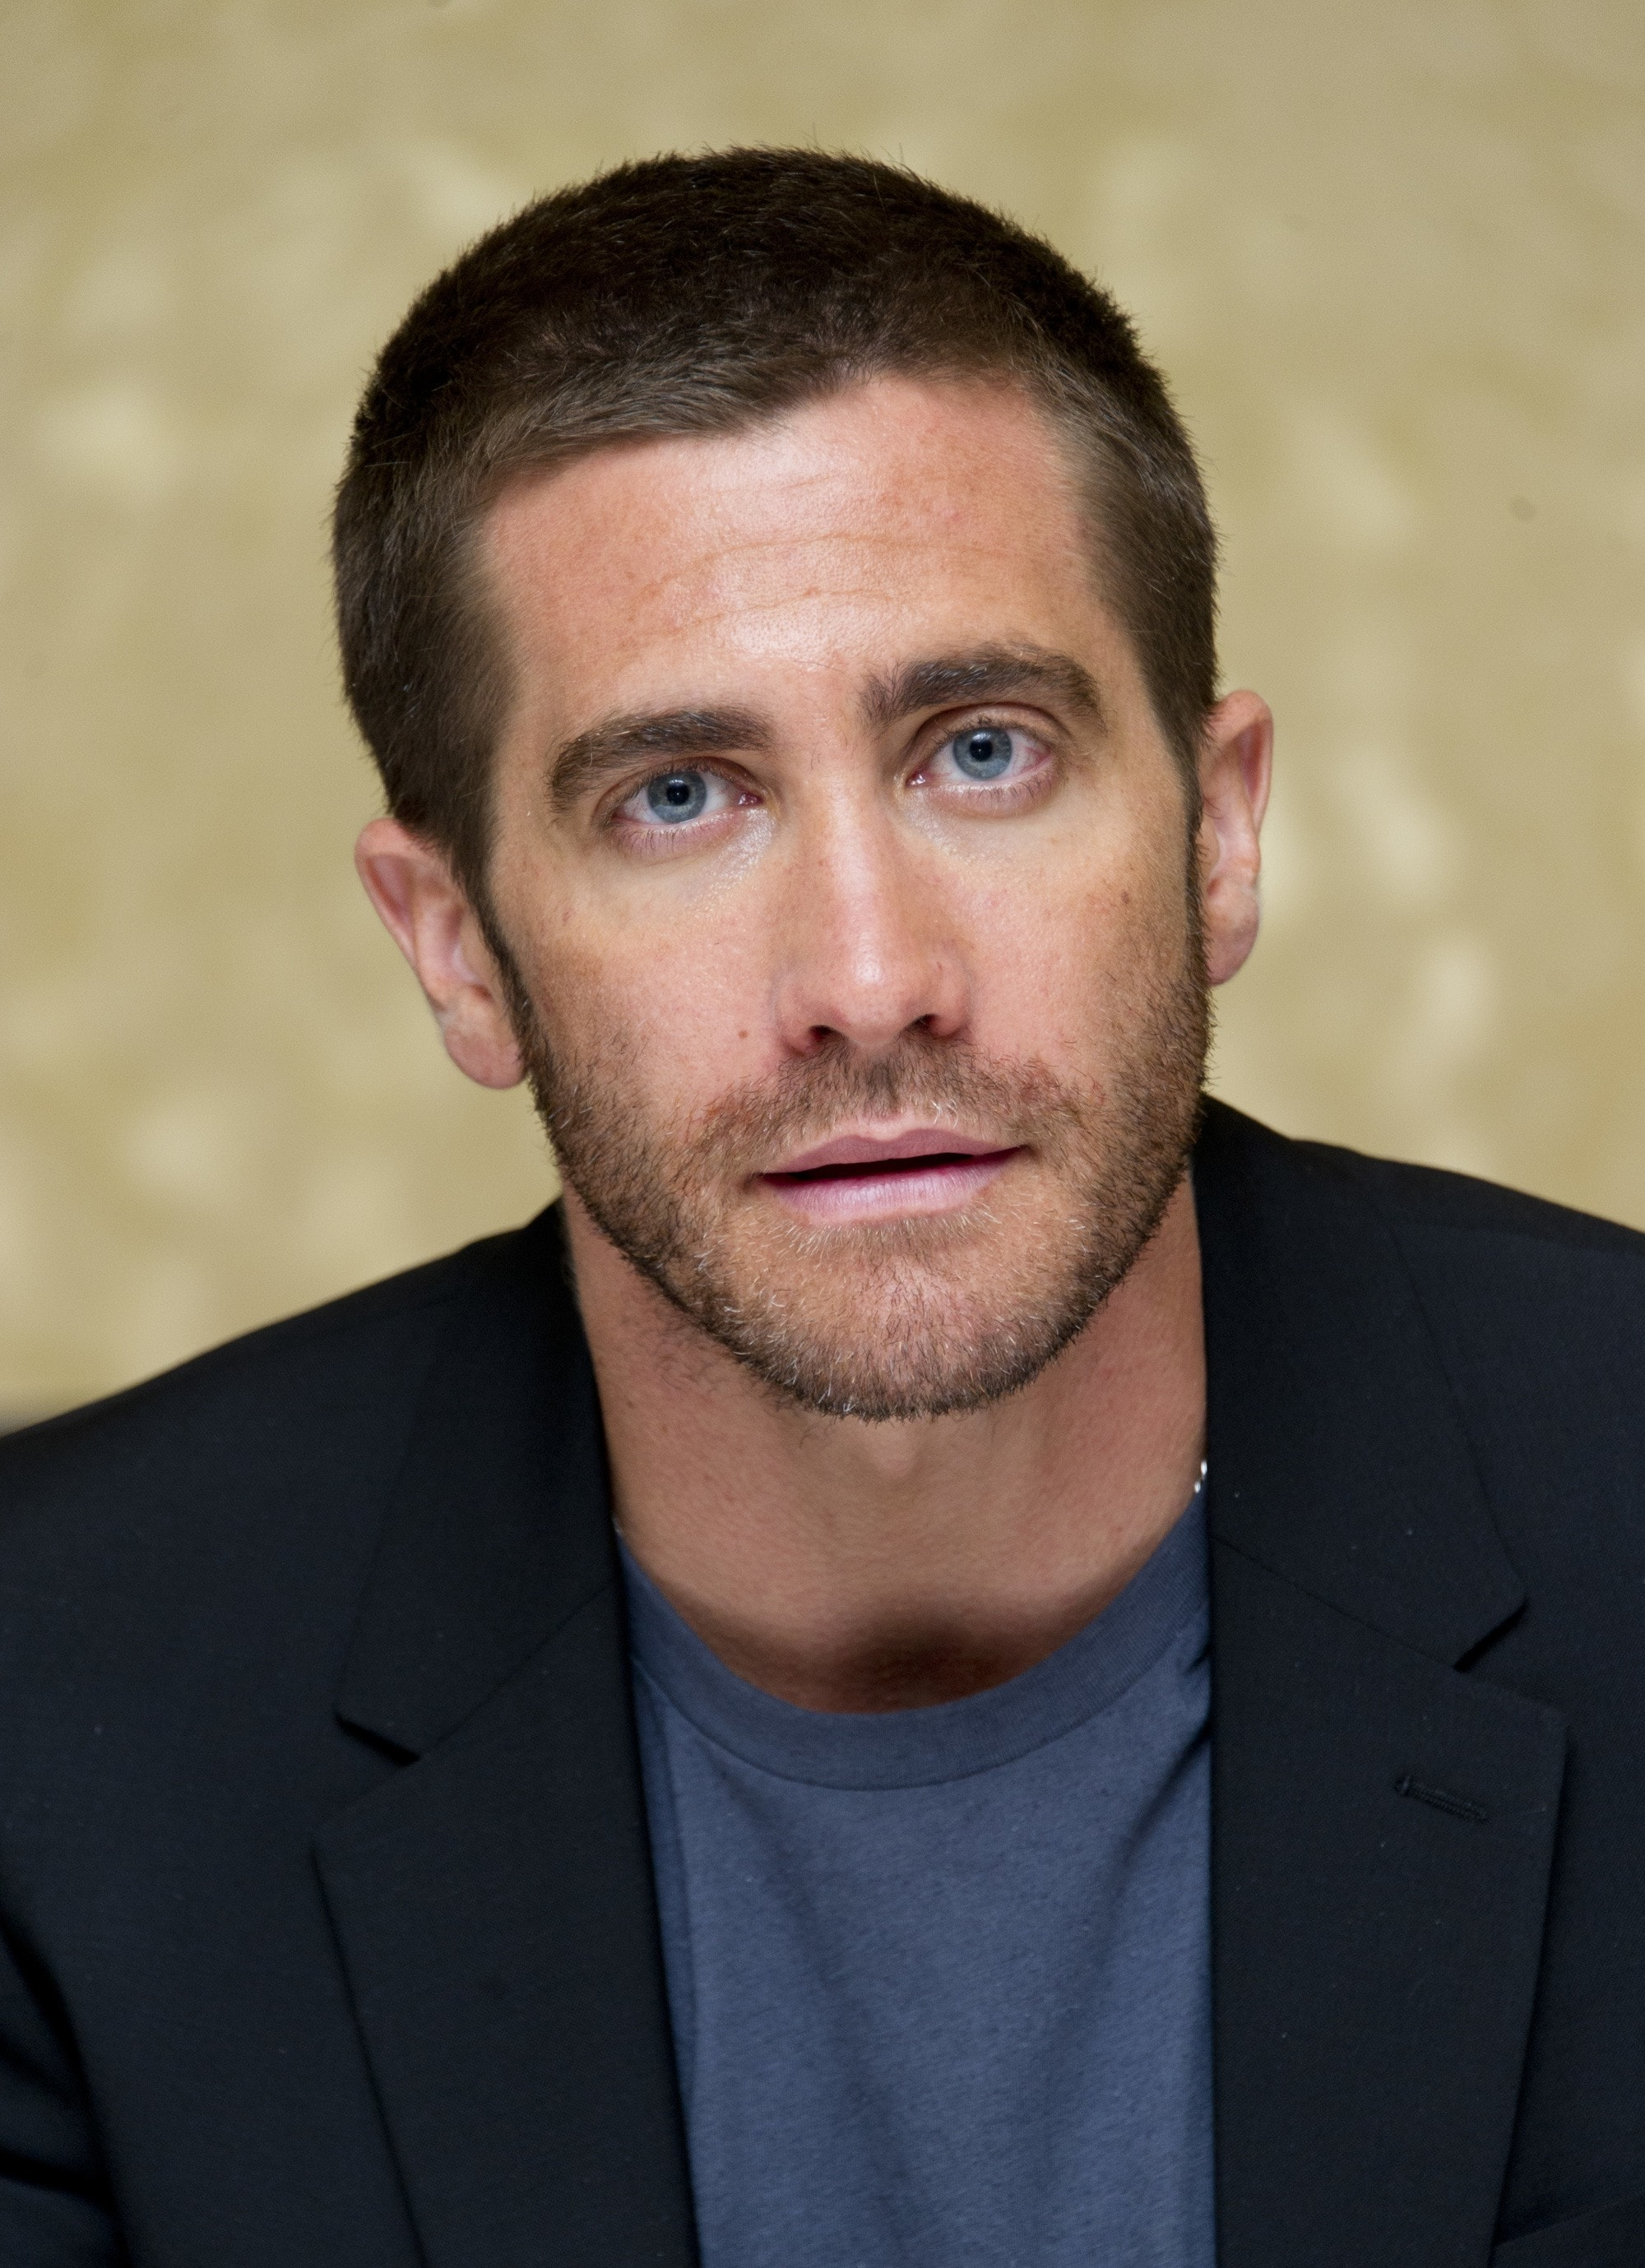 Hairstyles for receding hairline: Headshot of Jake Gyllenhaal with a crew cut haircut, wearing a blue t-shirt and black blazer